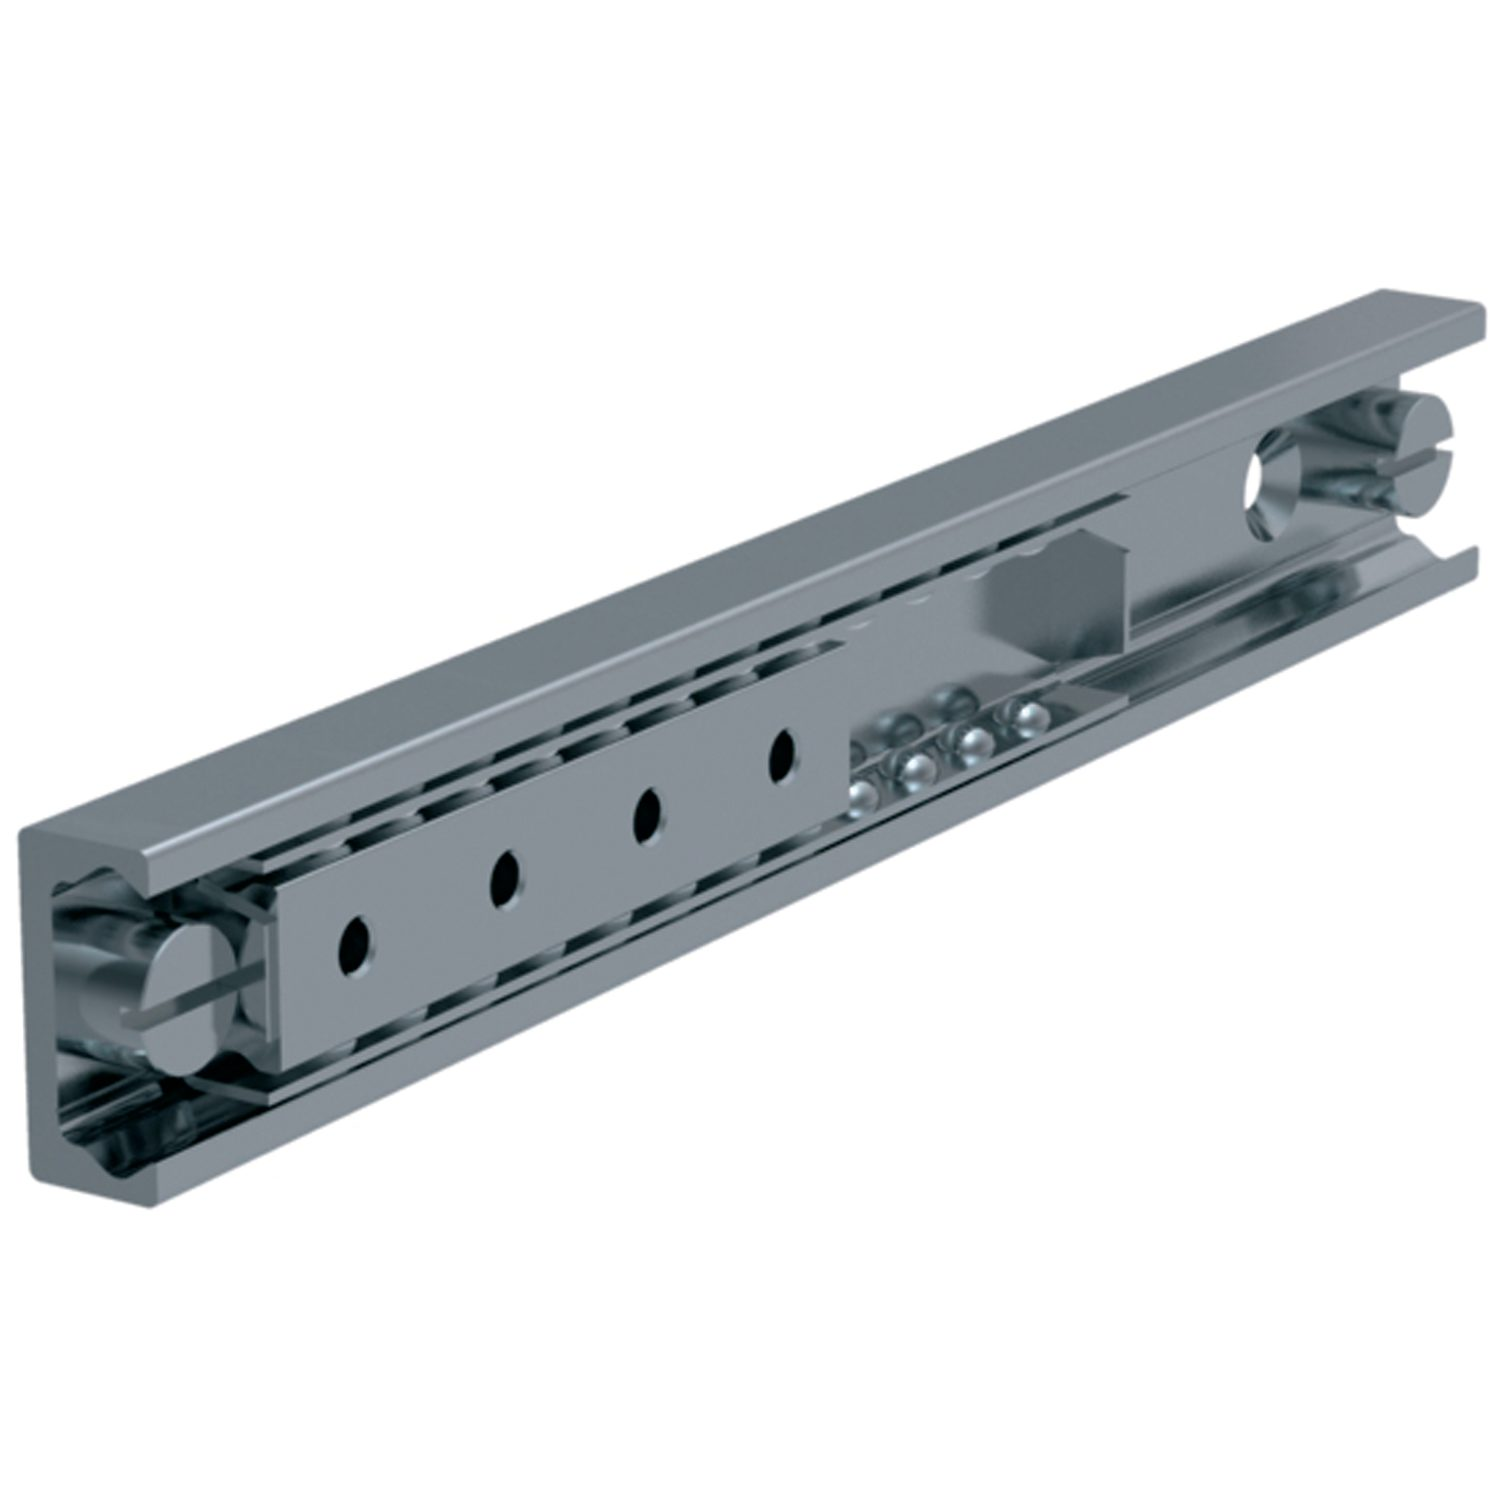 Easy Slide - Size 28 Easy slide high load rails come in sizes 28, 35, 43 or 63. They are made from zinc plated steel.